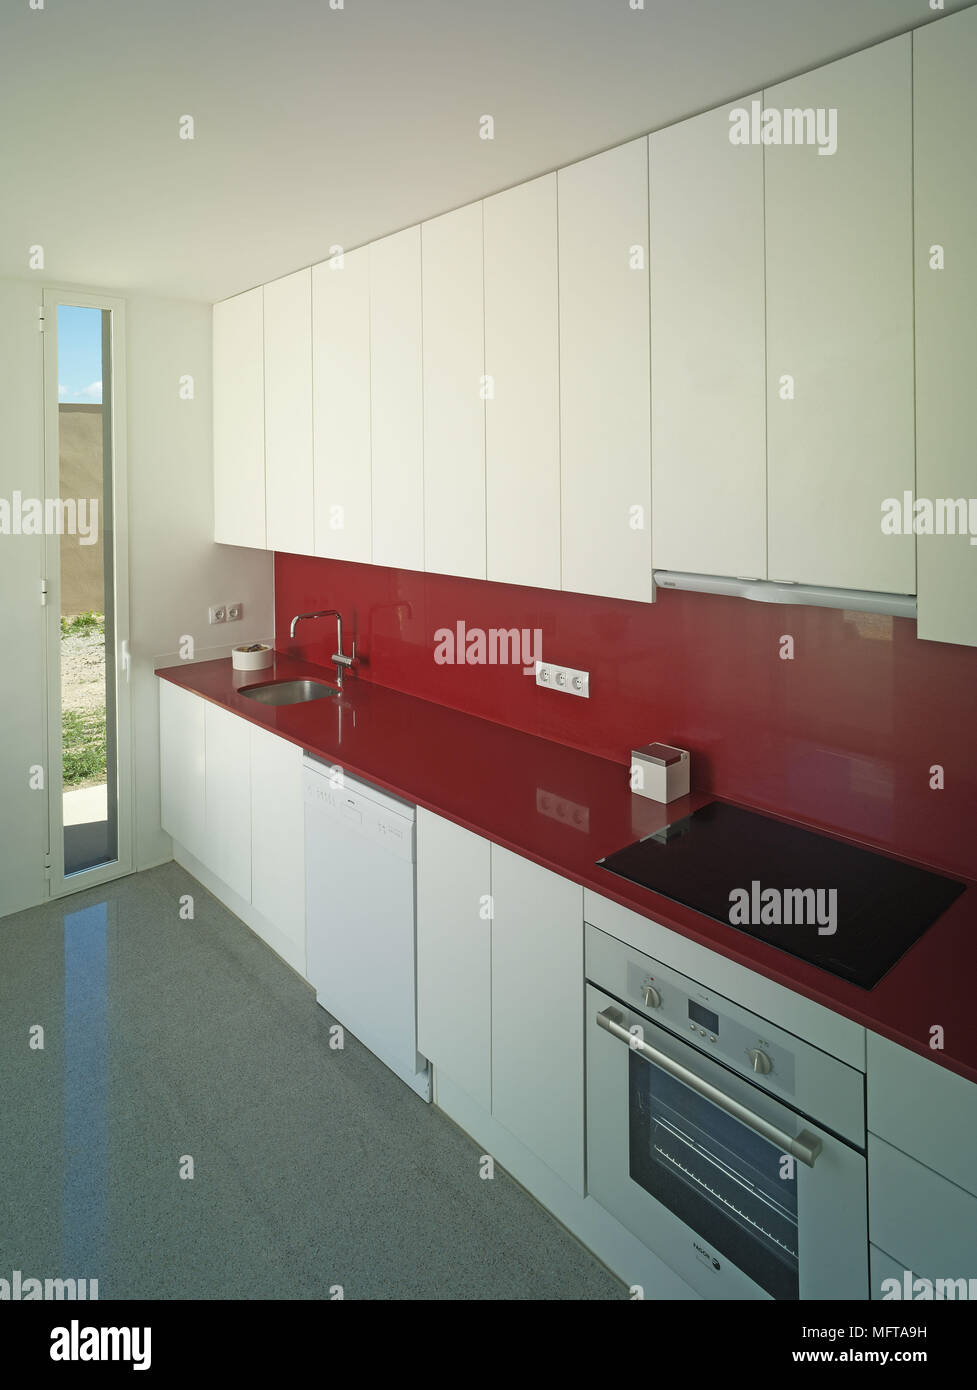 Sink And Hob Set In Red Worktop In Modern Kitchen Stock Photo